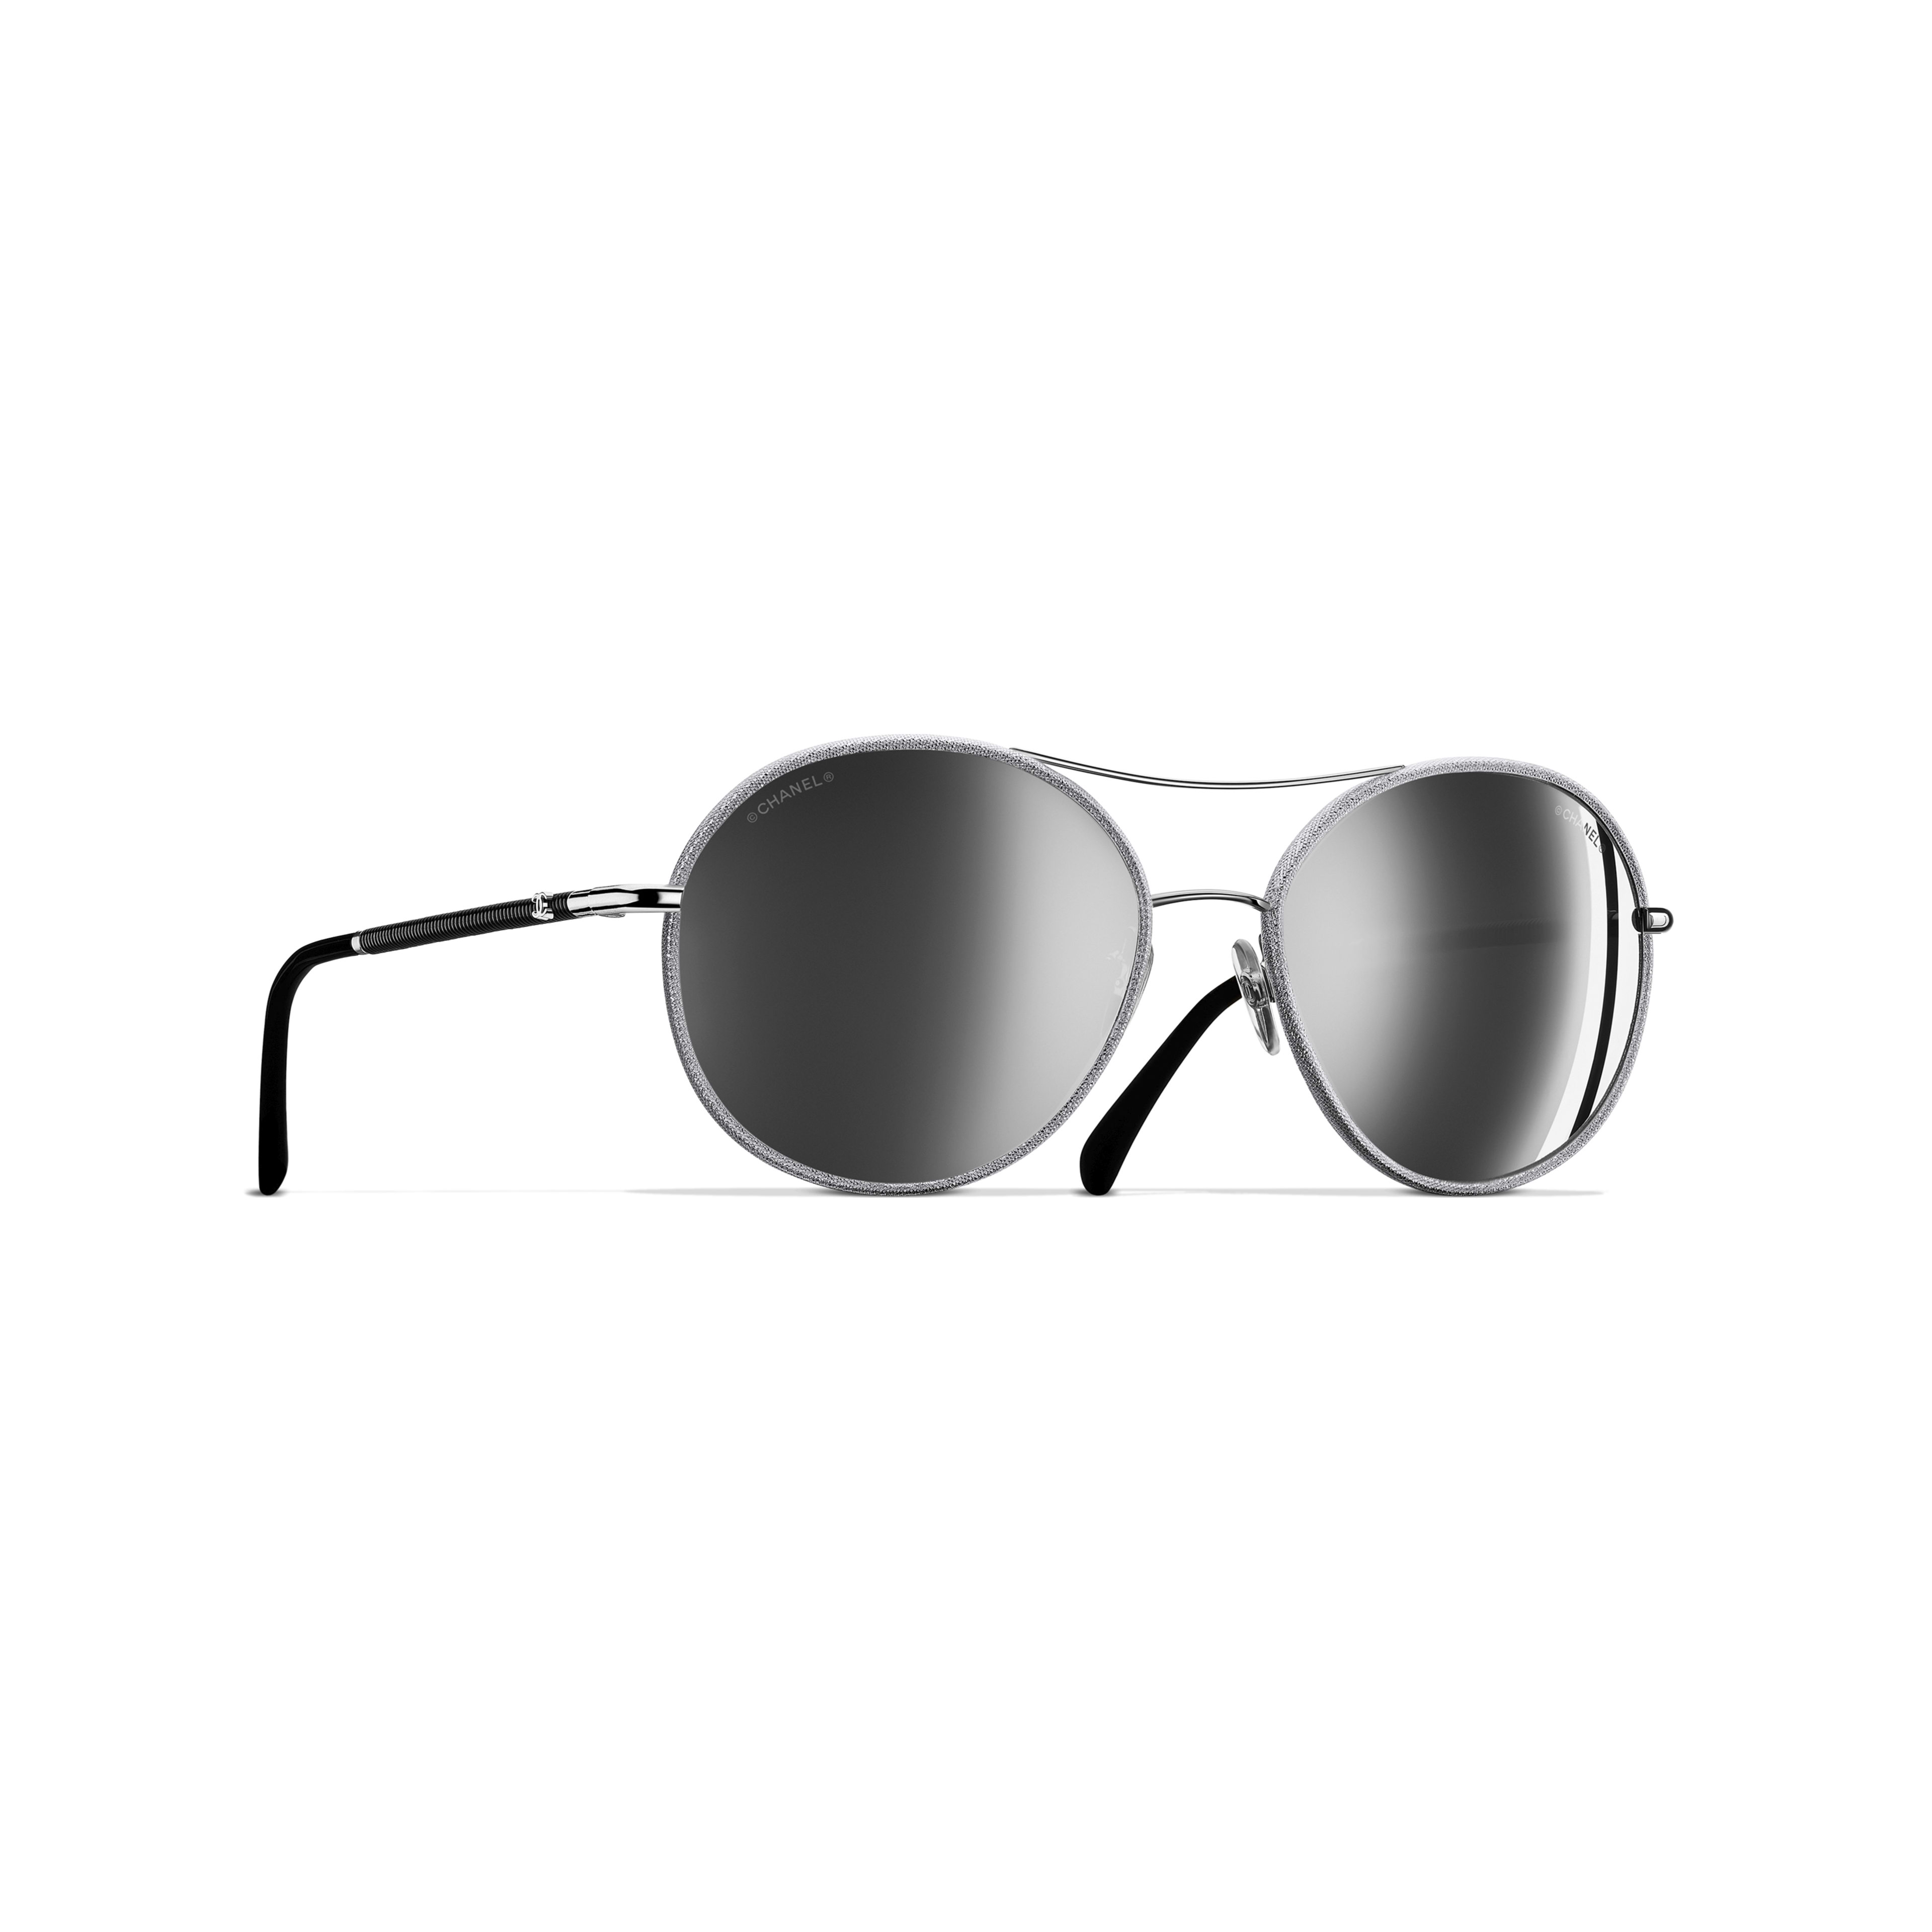 Pilot Sunglasses Metal & Polyester Silver -                                               view 1 - see full sized version